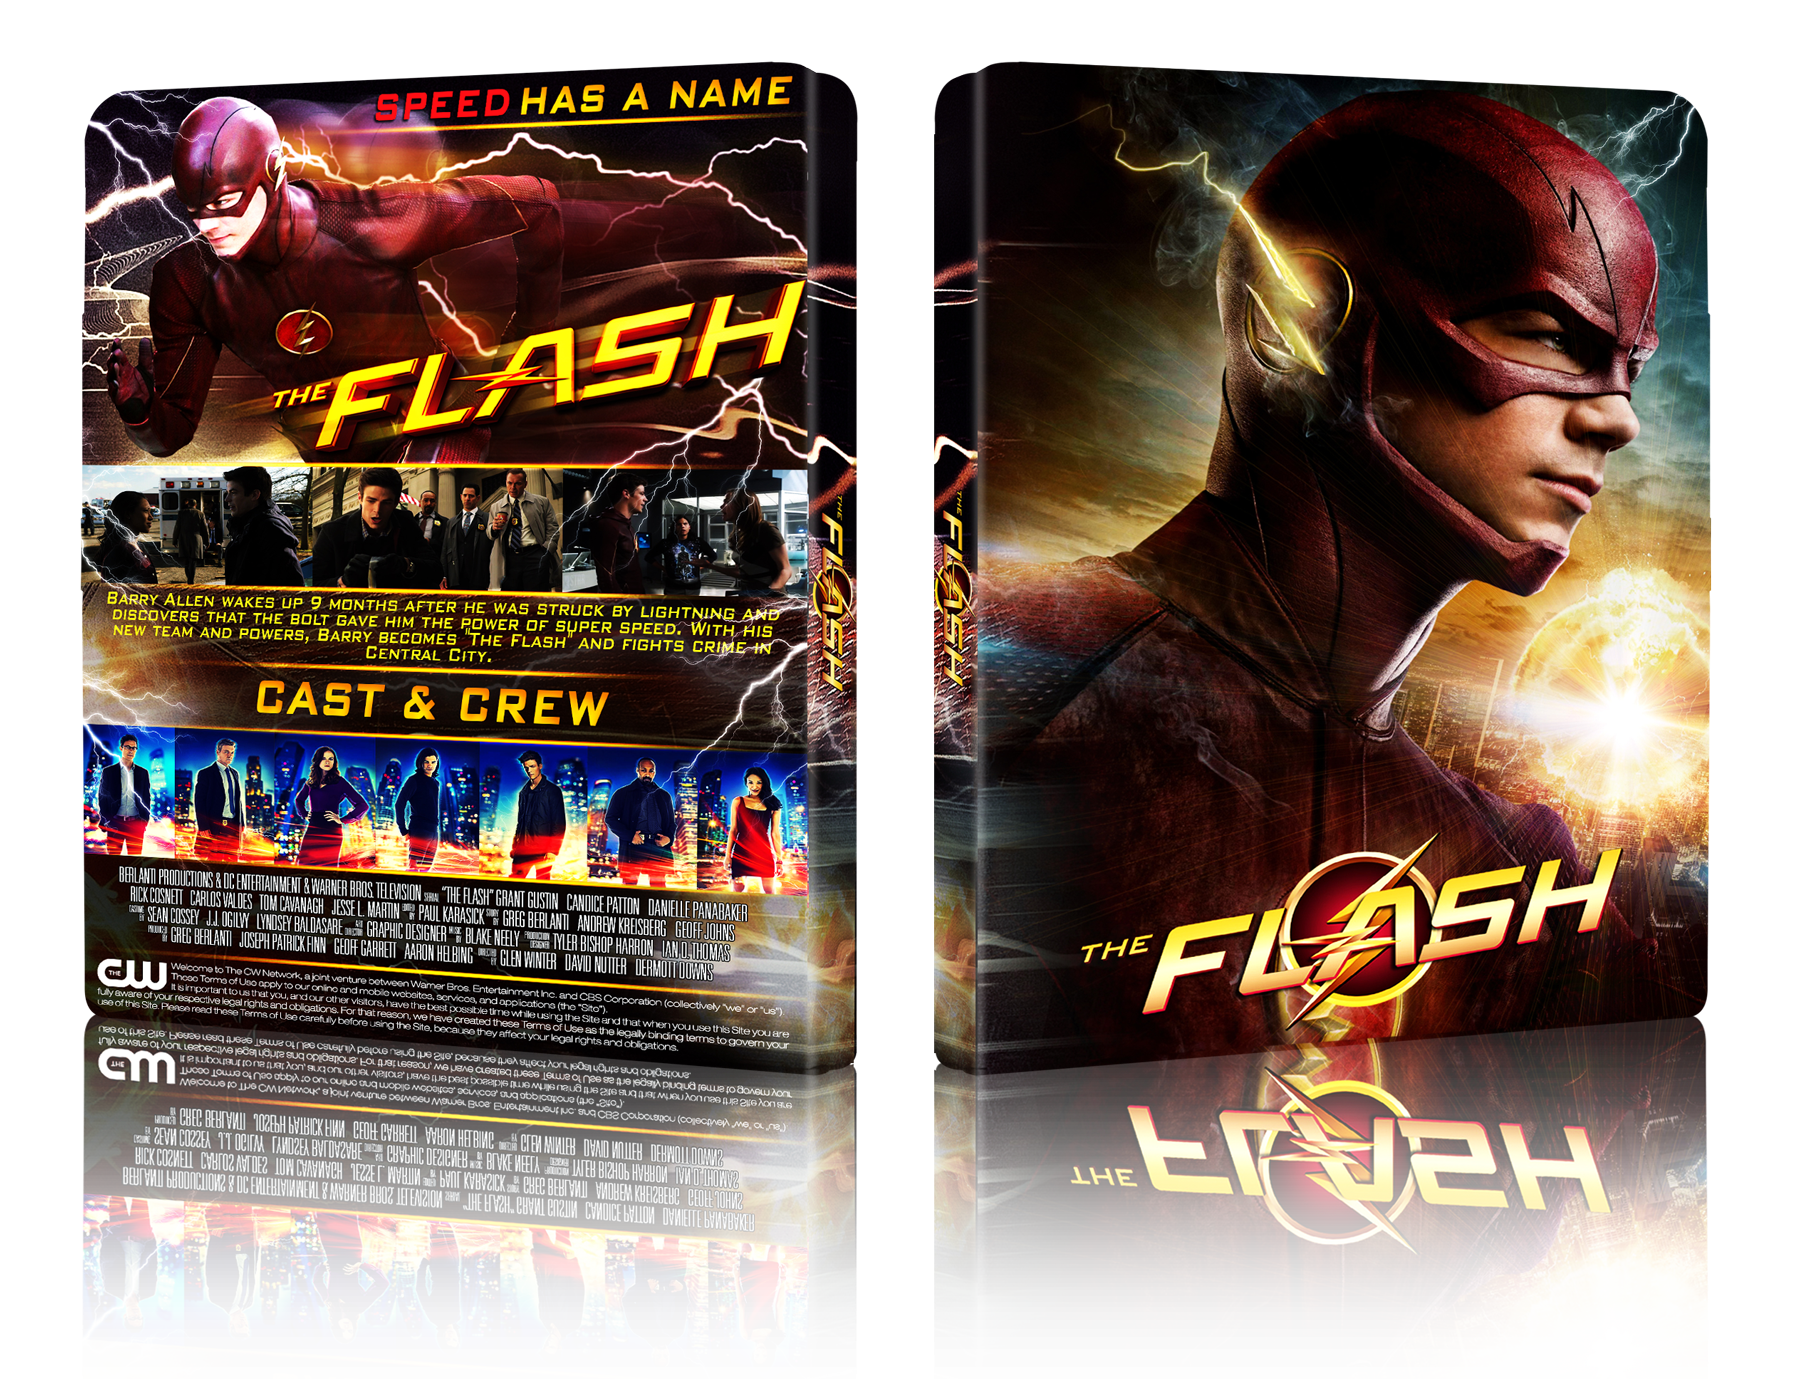 The Flash box cover